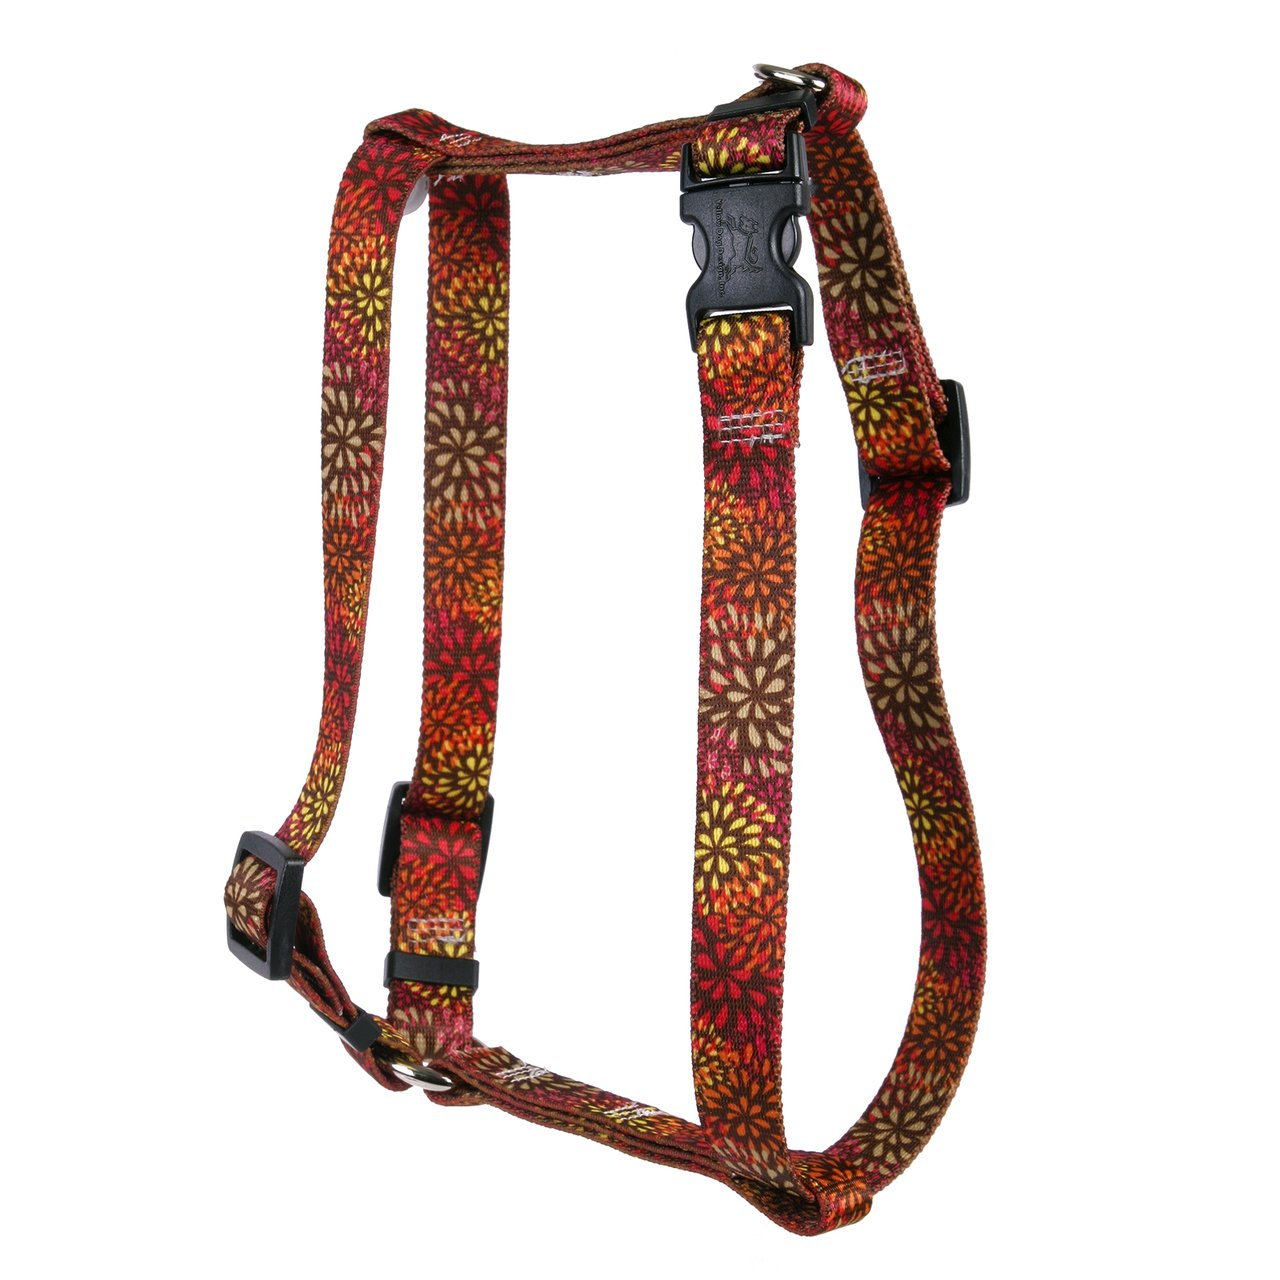 Yellow Dog Design Flower Works Red Roman Style H Dog Harness Fits Chest Circumference of 8 to 14'', X-Small/3/8